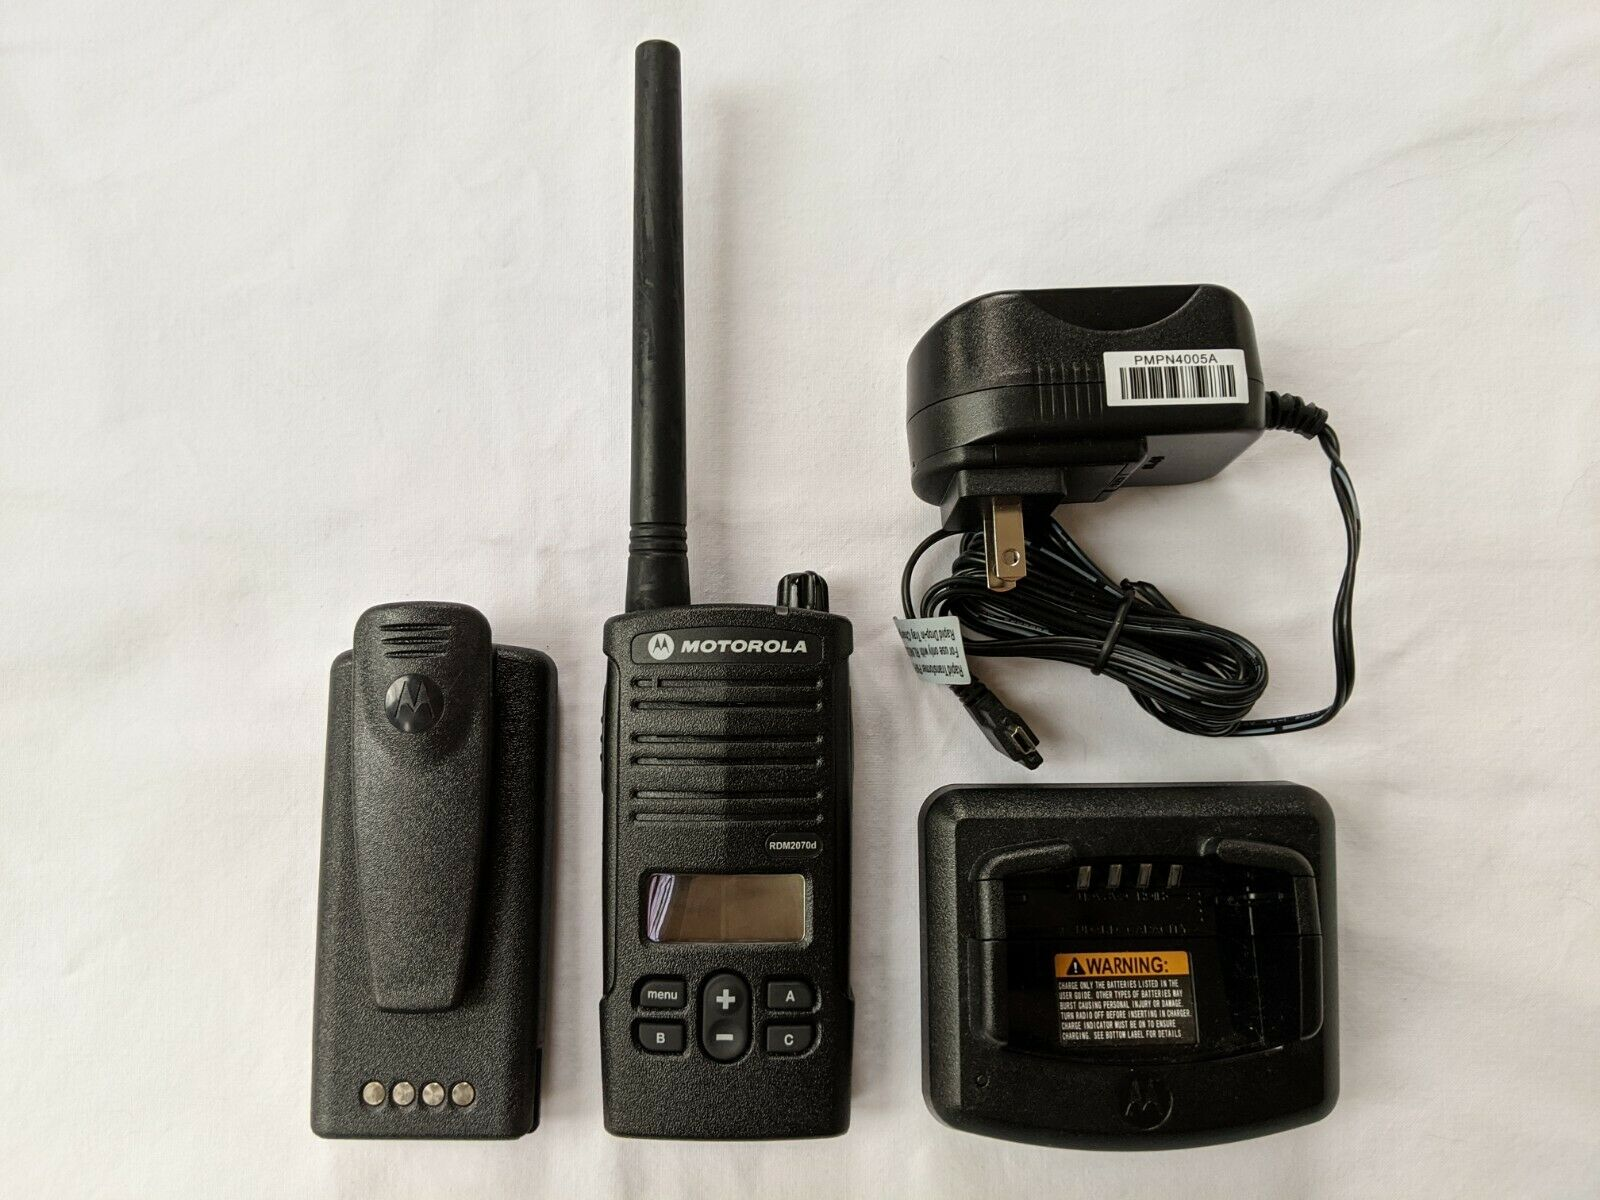 Motorola RDM2070D Walmart VHF Two-Way Radio. 2 watts / 7 channels. Available Now for 199.00